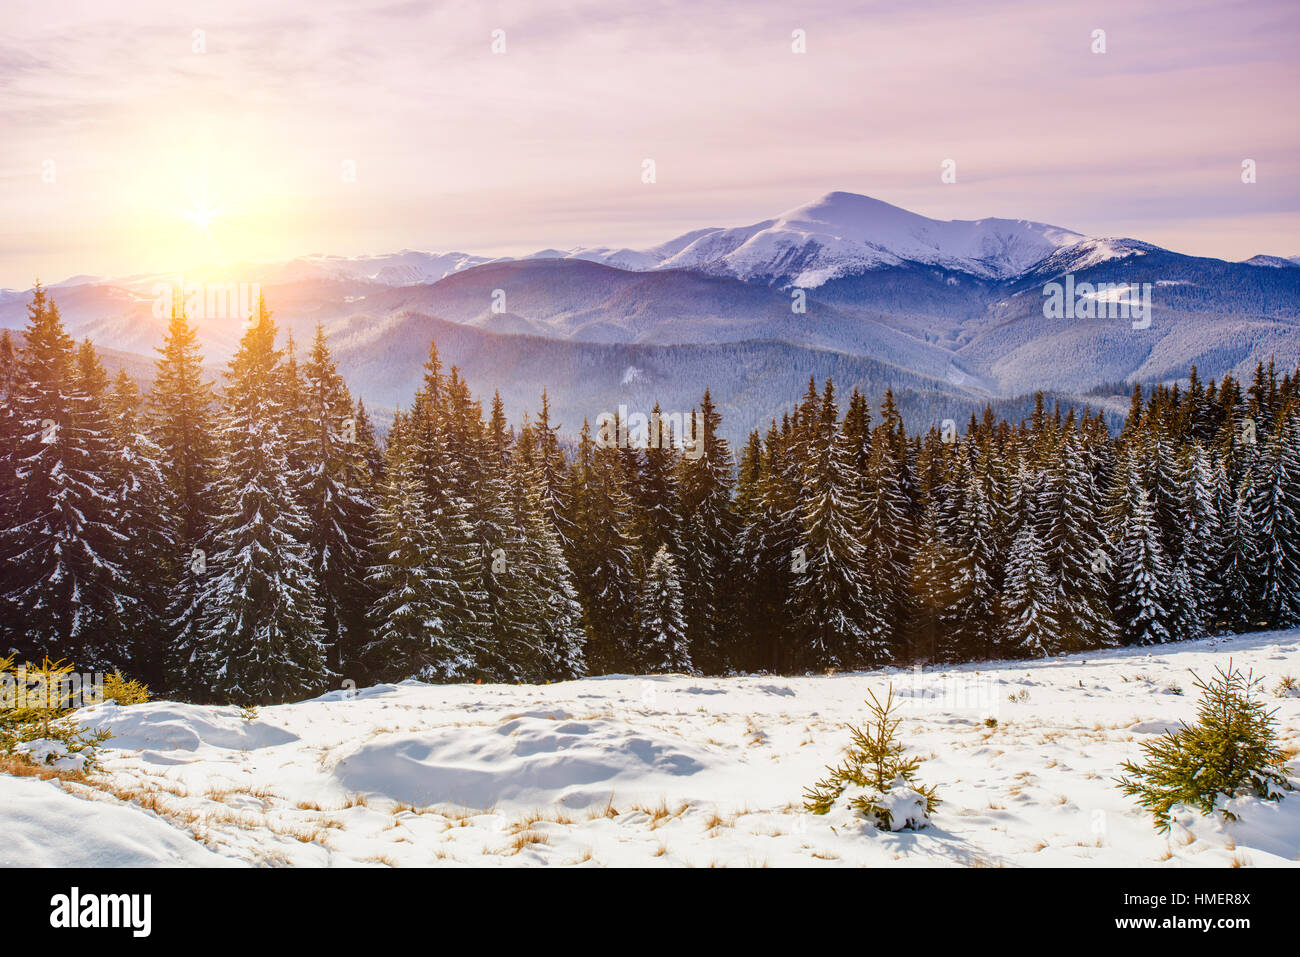 snow capped mountains - Stock Image